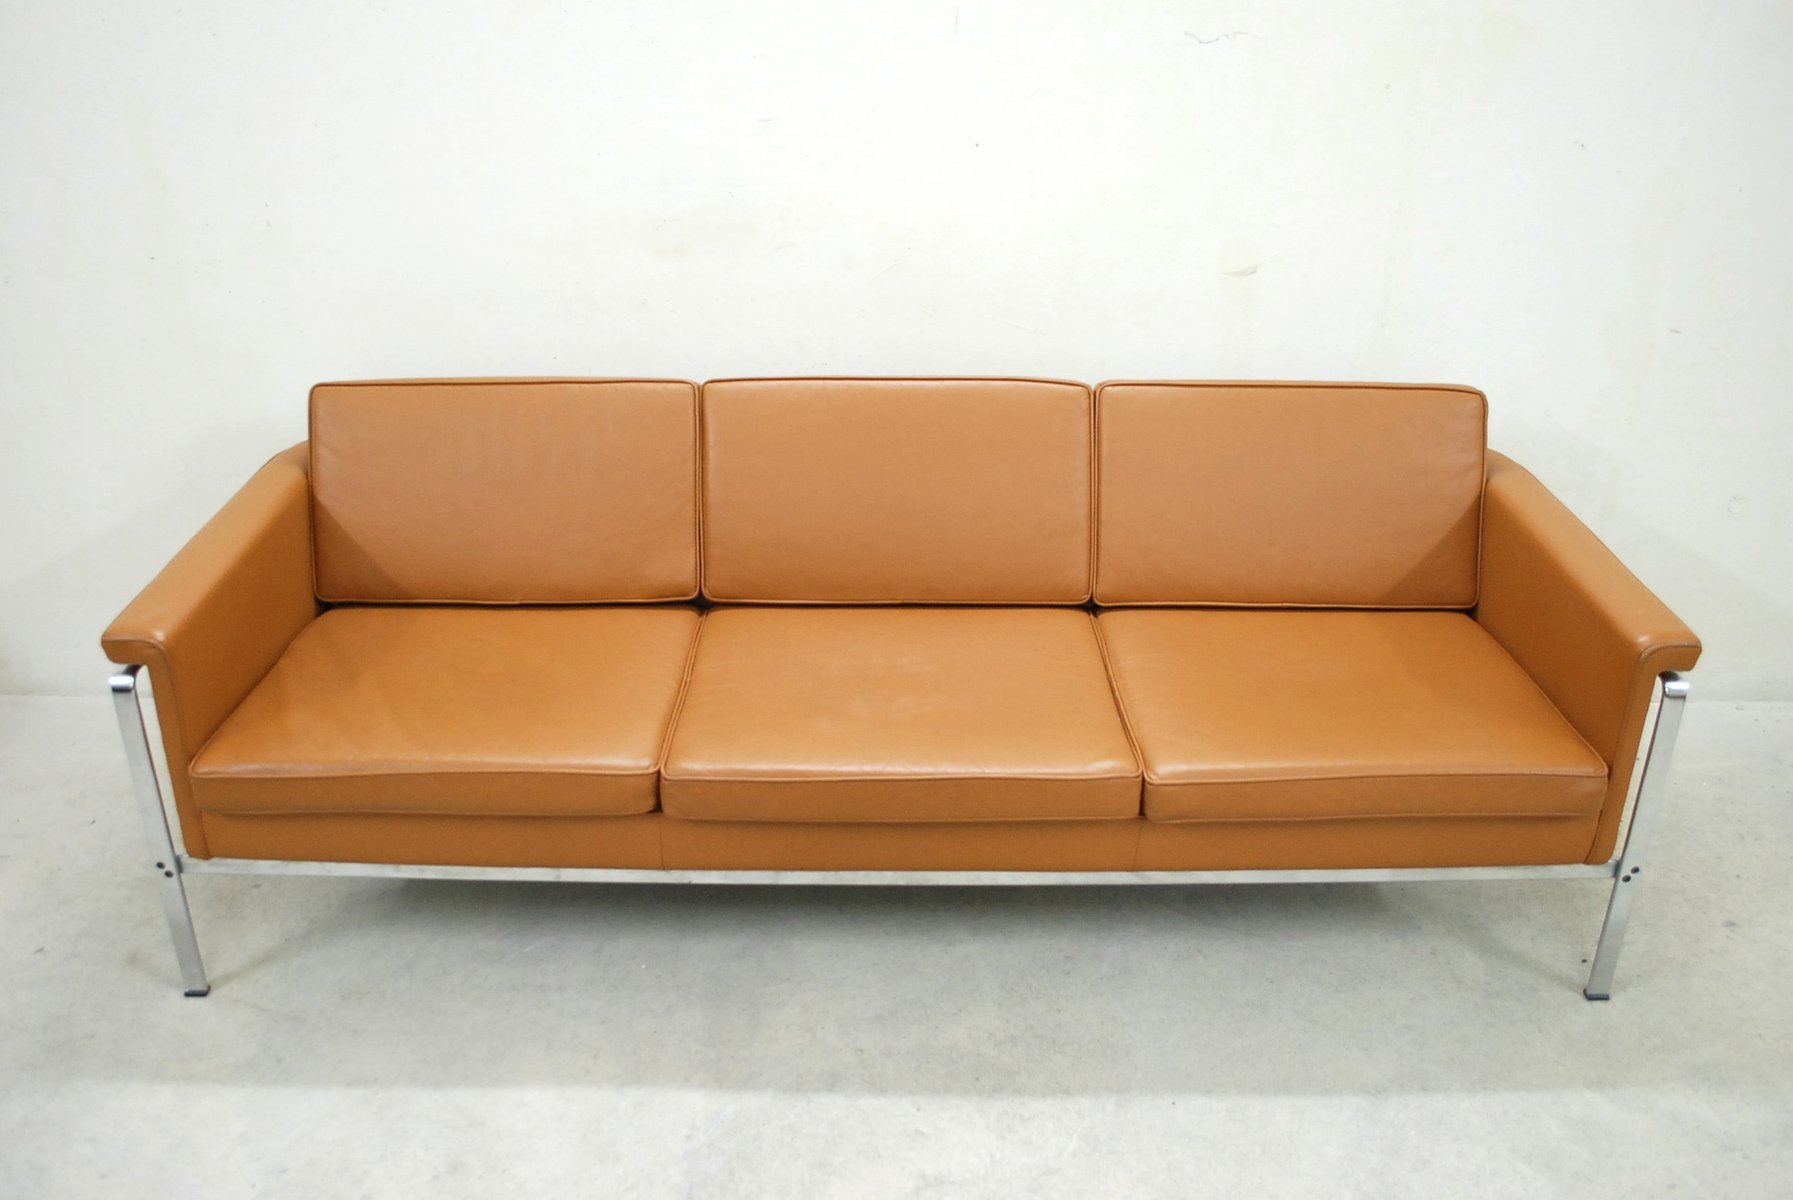 German 6913 Cognac Leather Sofa By Horst Brüning For Kill International, 1960s For Sale At Pamono